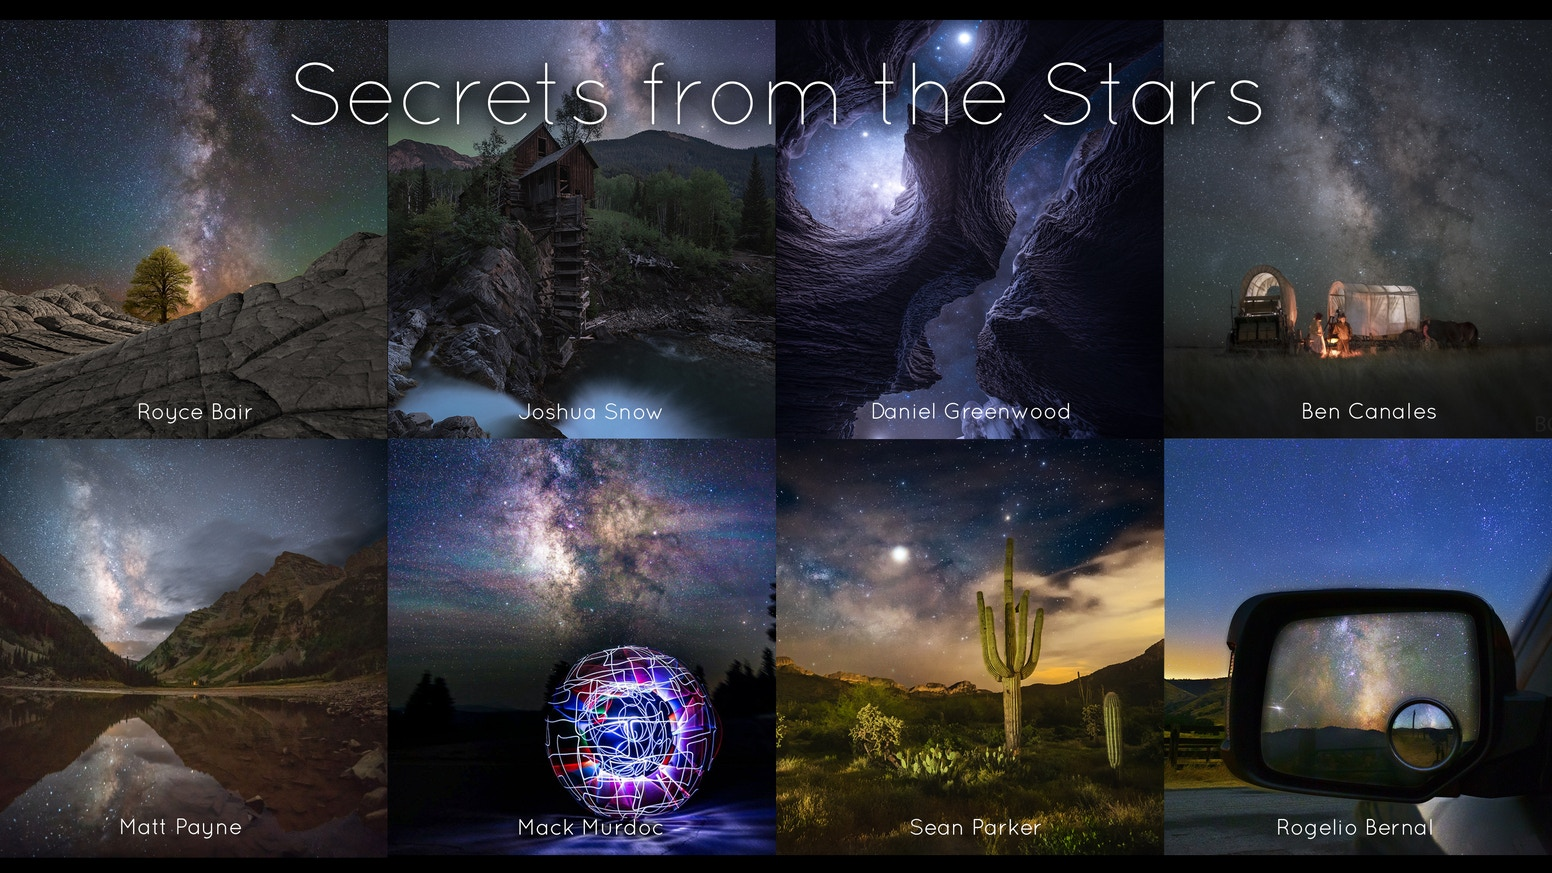 A high-quality hardcover book with 8 night photography masterclasses, each written by a world-class, award-winning astrophotographer